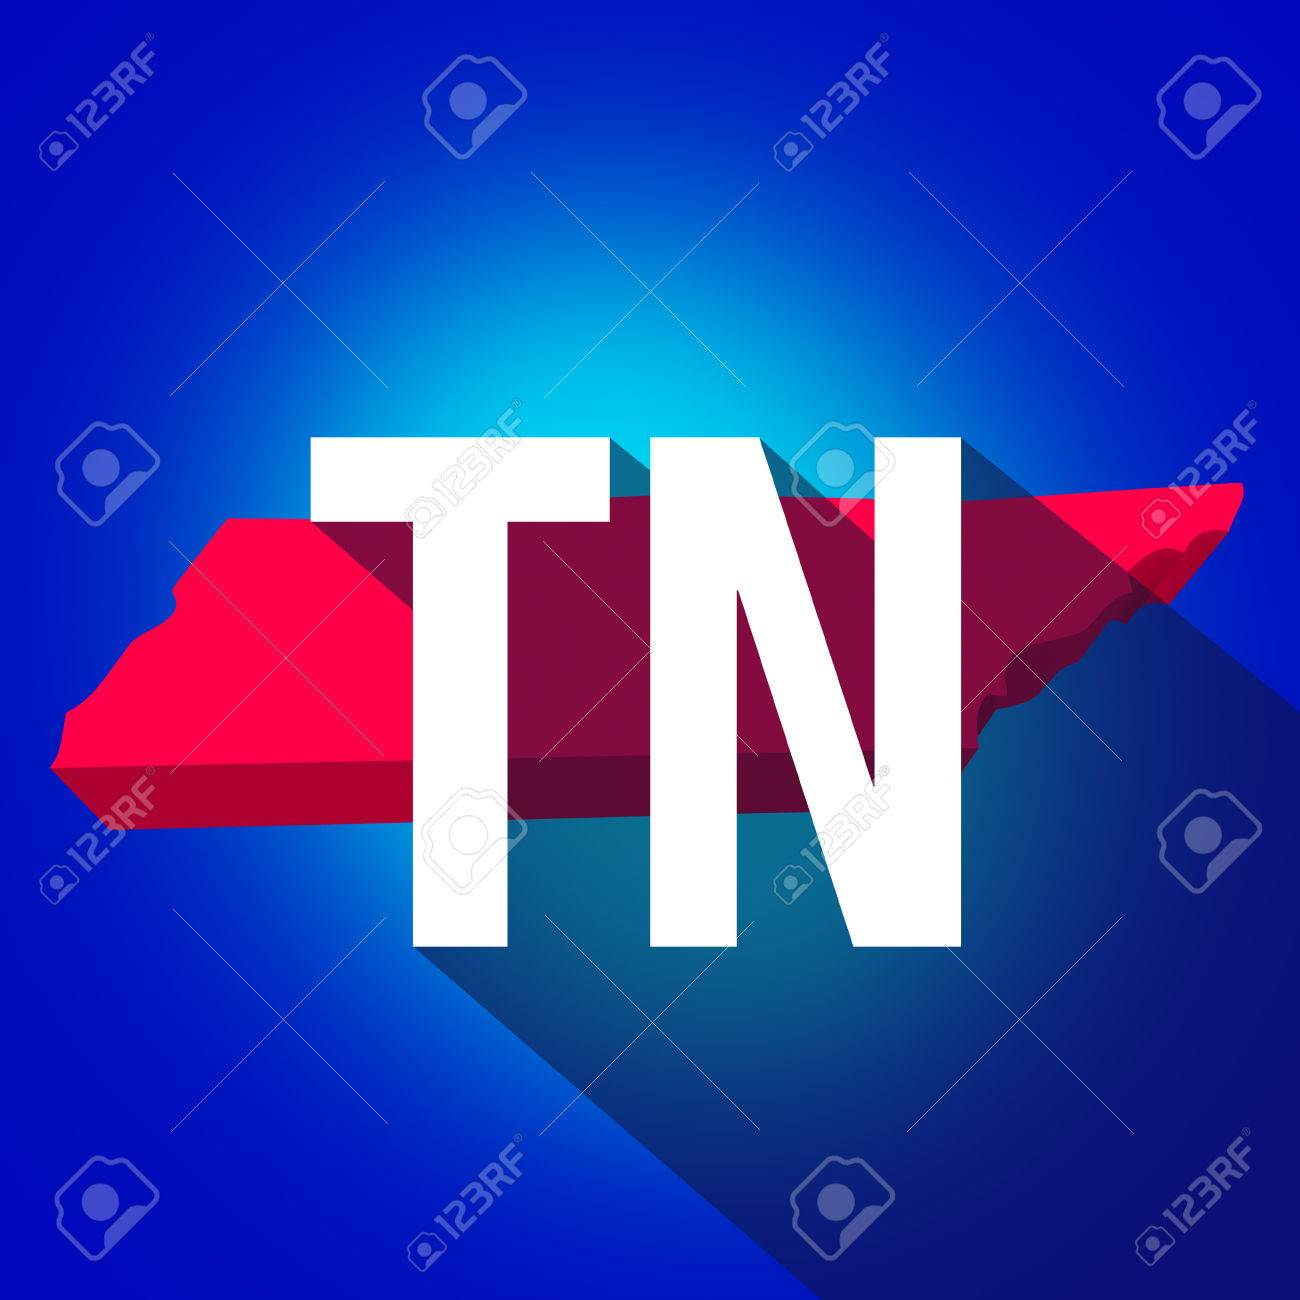 Tennessee Tn Letters On A 3d Map Of The State As Part Of The Usa United